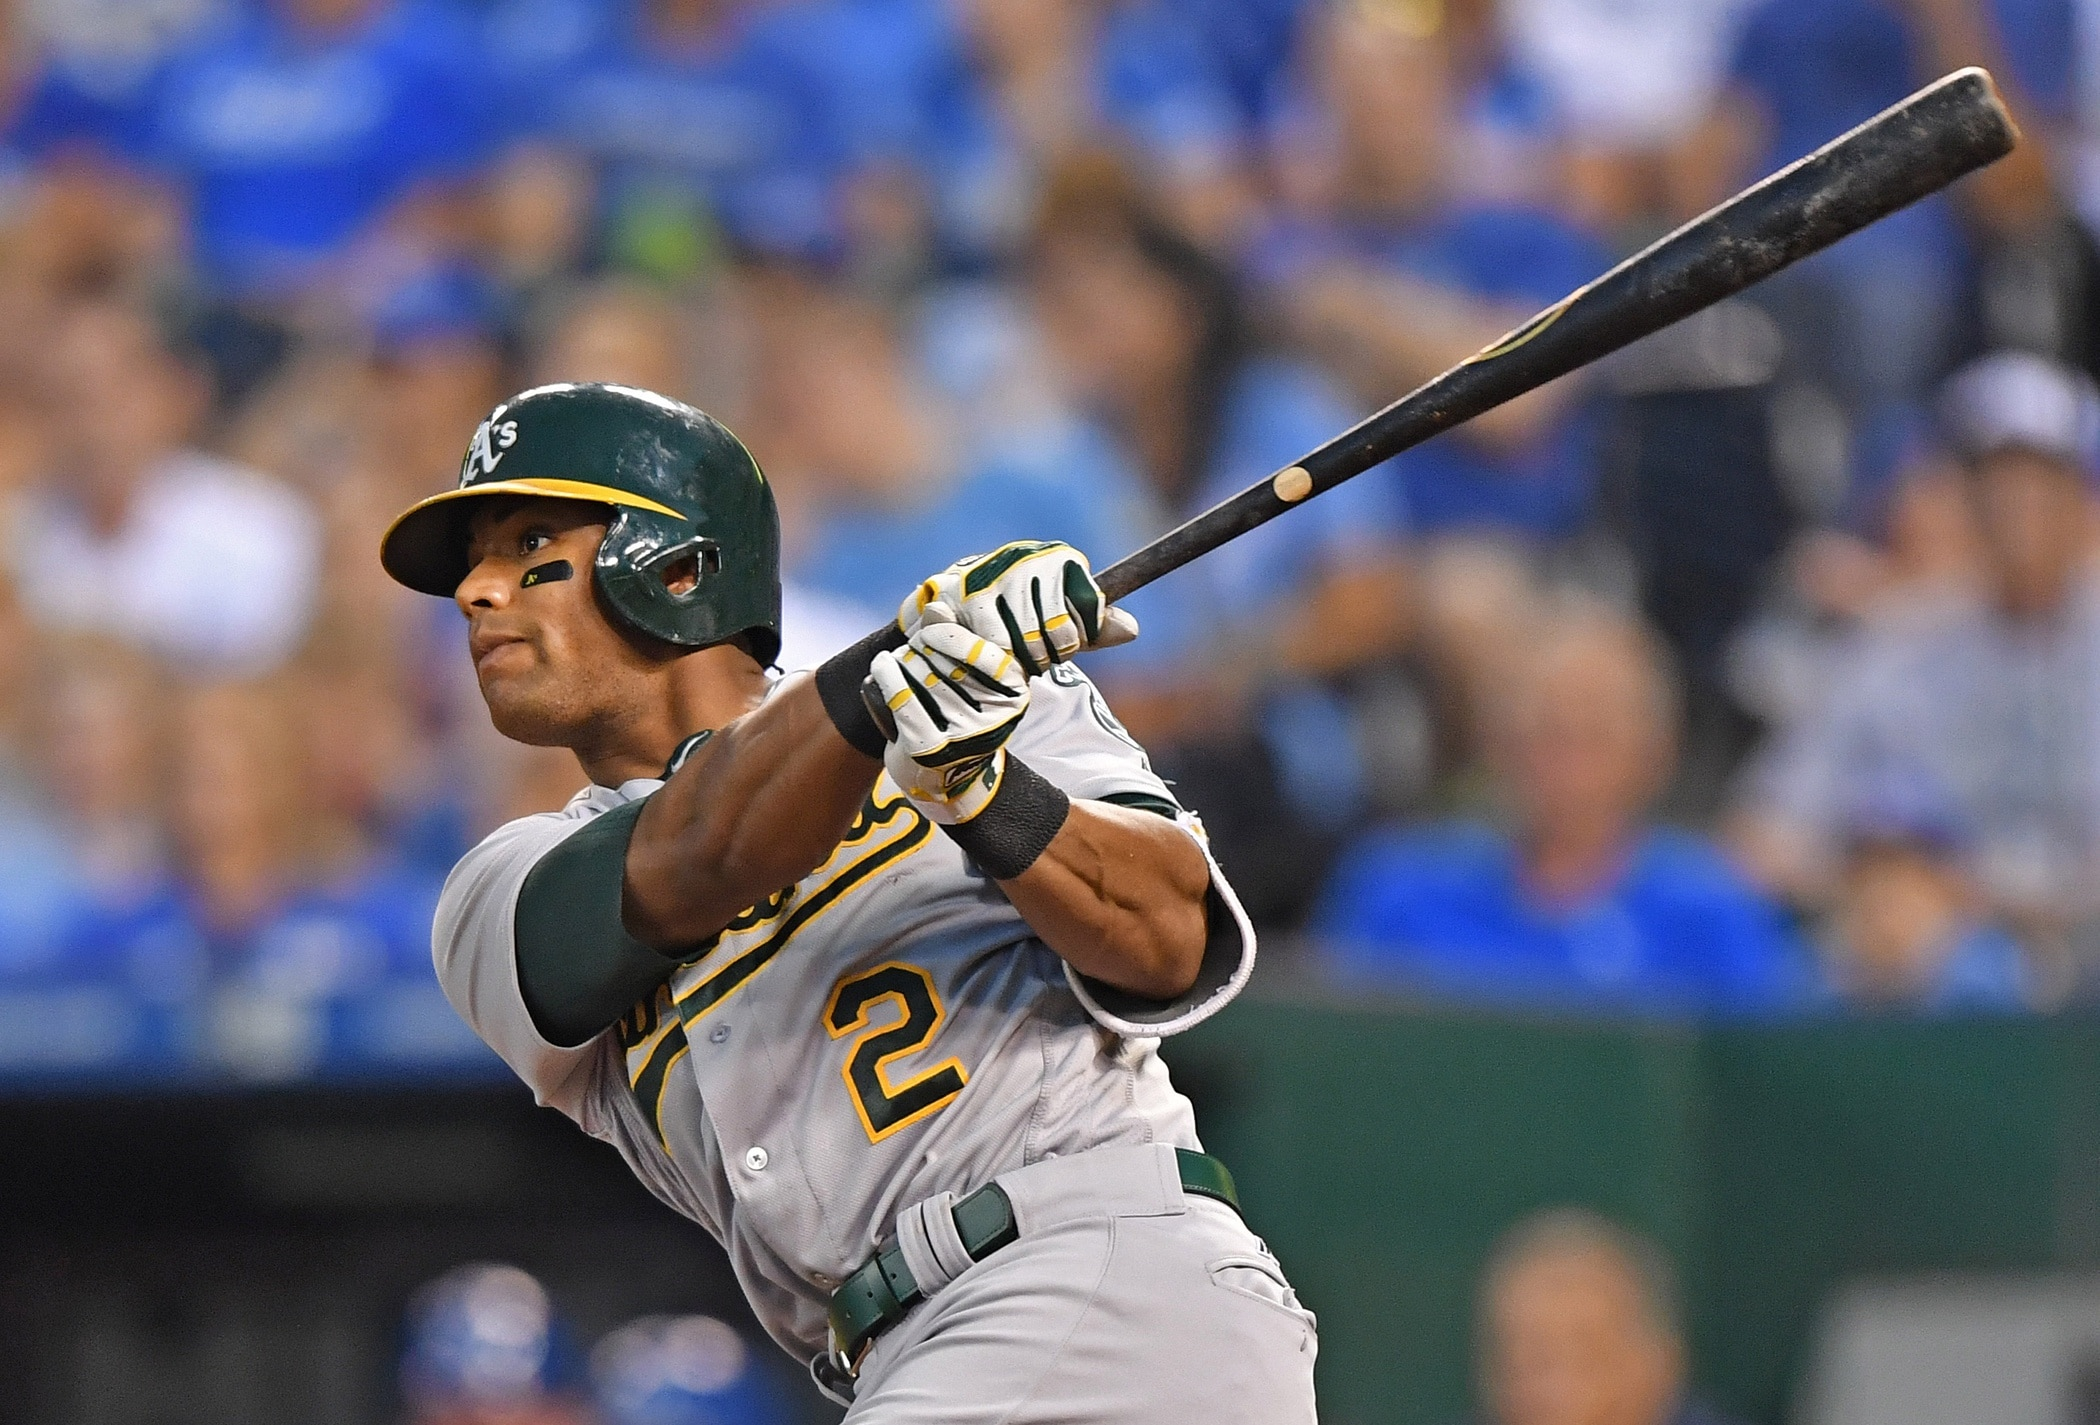 MLB players, Khris Davis